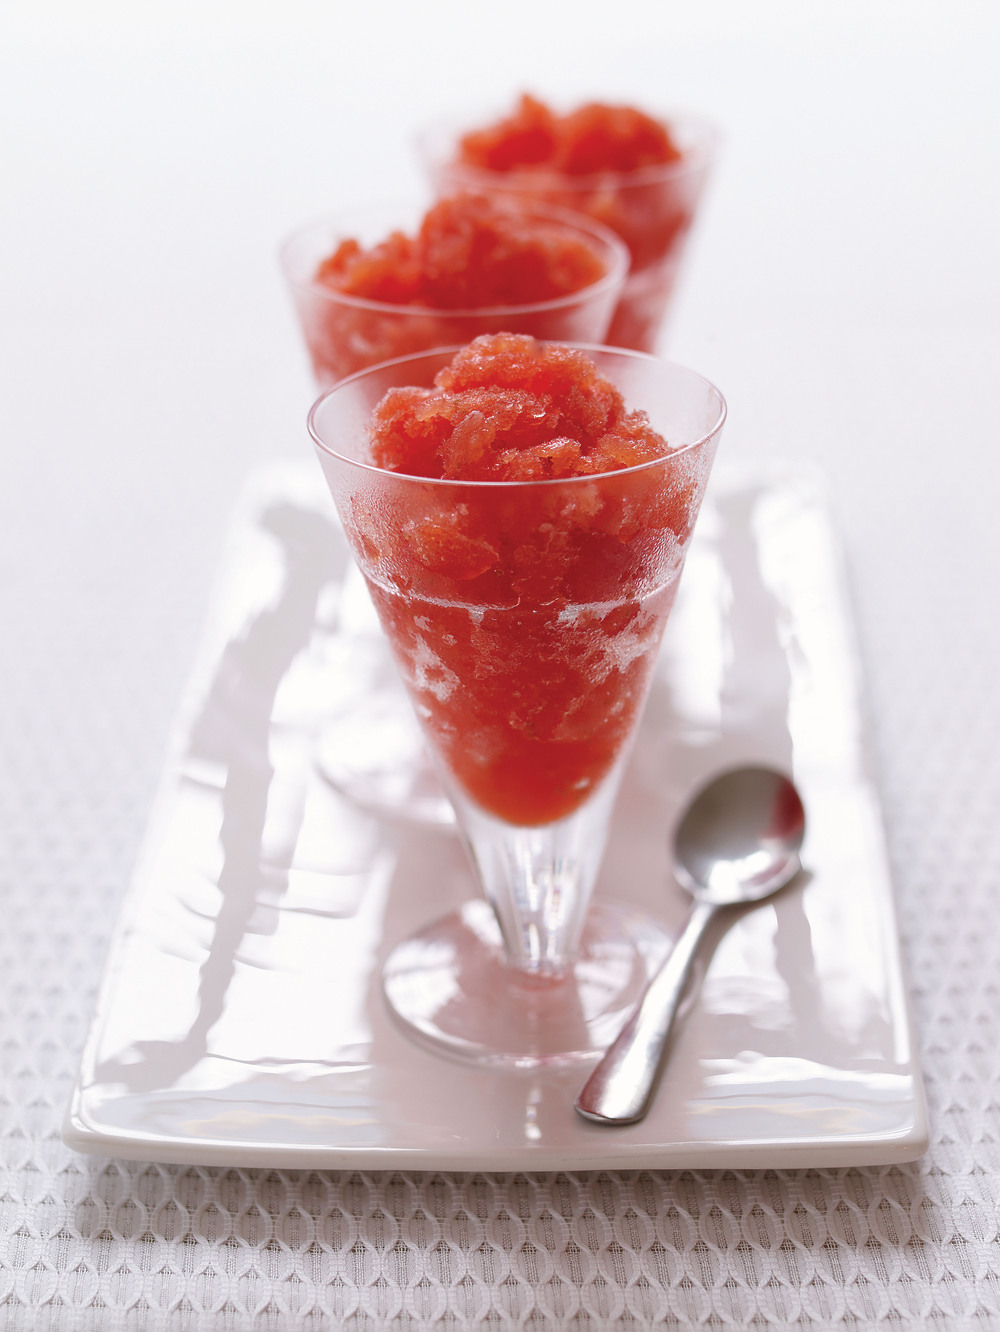 Strawberry & Vodka Granita recipe